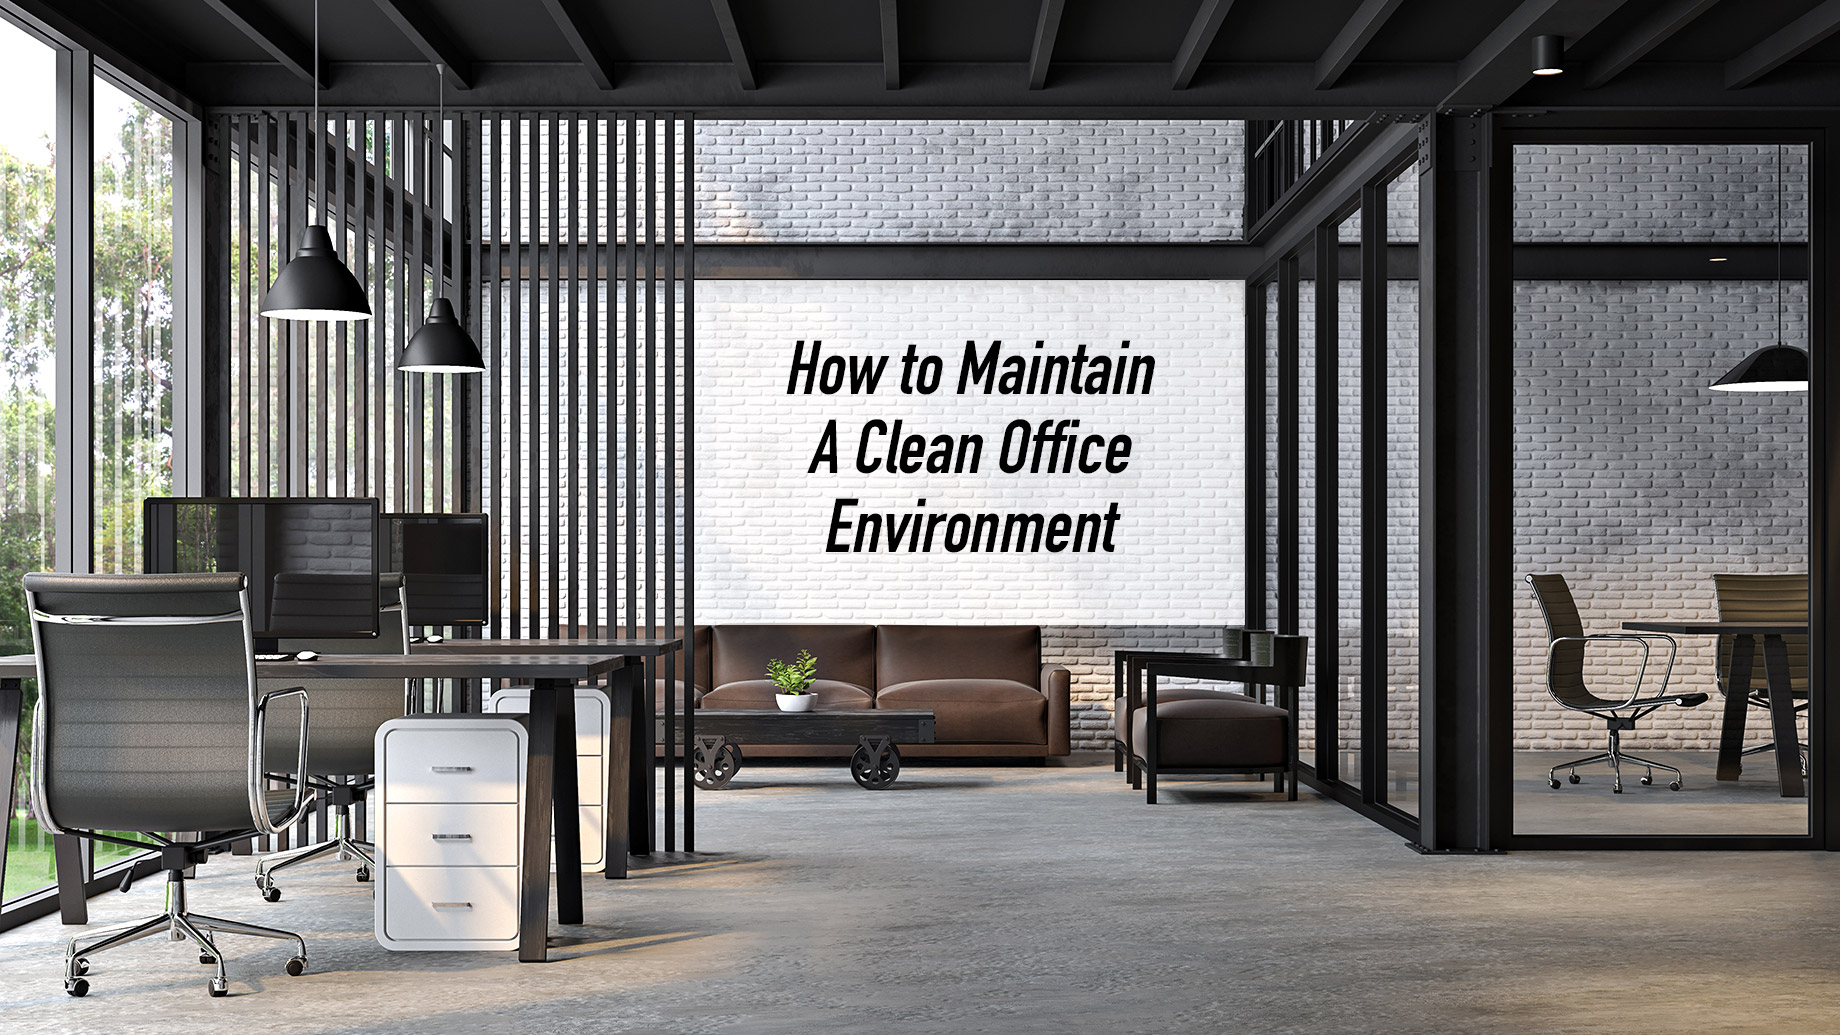 How to Maintain A Clean Office Environment? - Tips For Managers